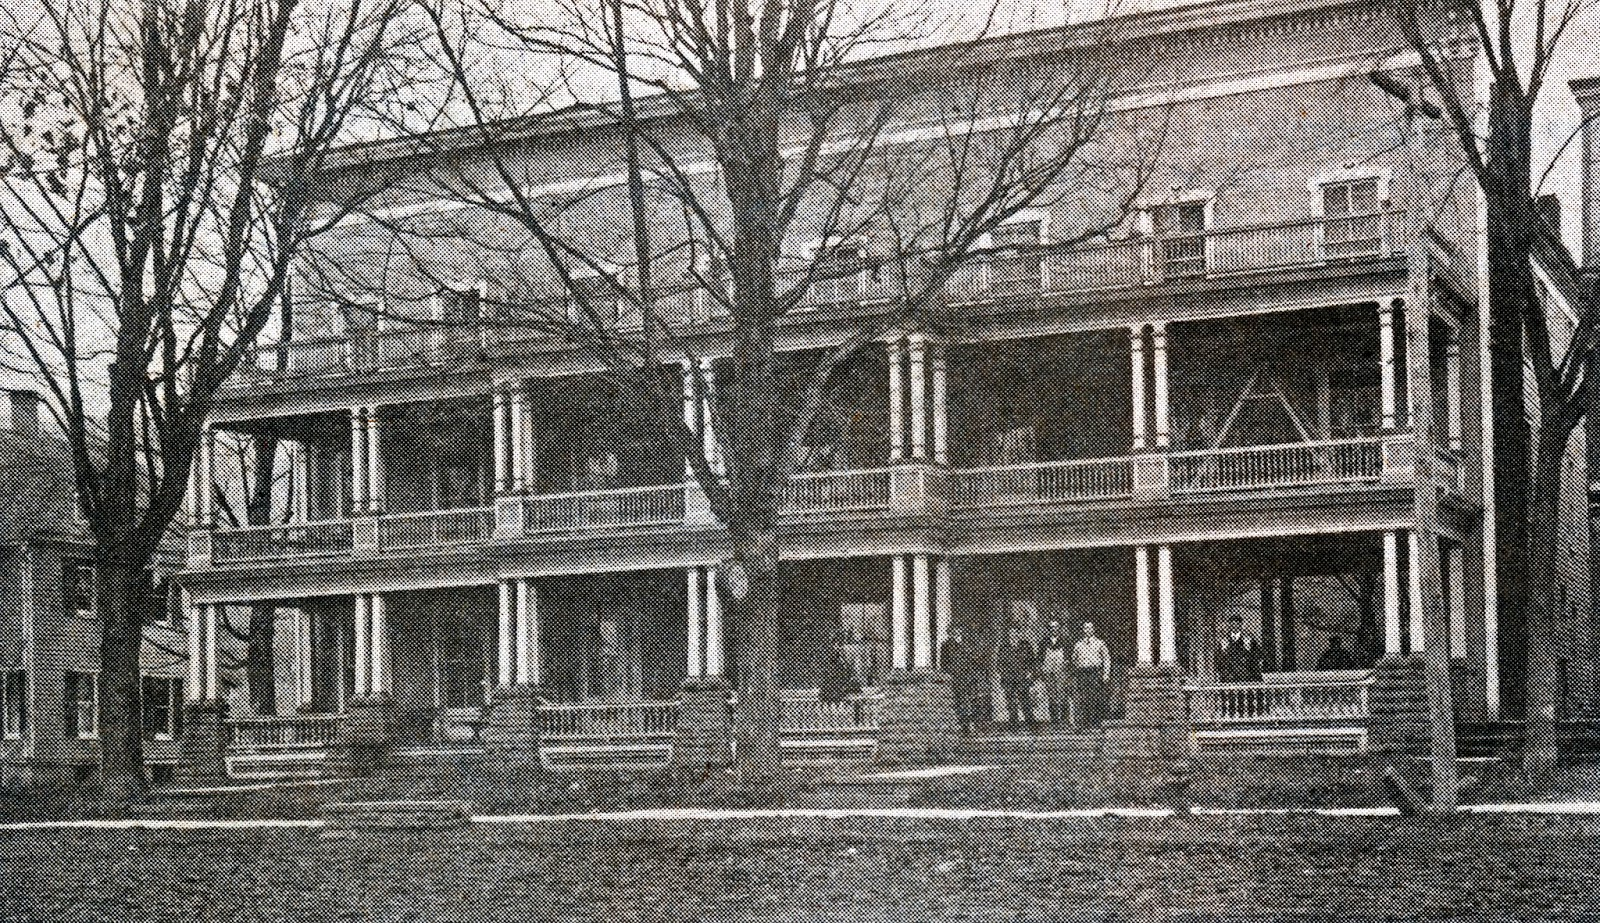 Old Park Hotel That Once Faced The Village Green In Bainbridge It Was Torn Down About 1935 When Demerees Located There